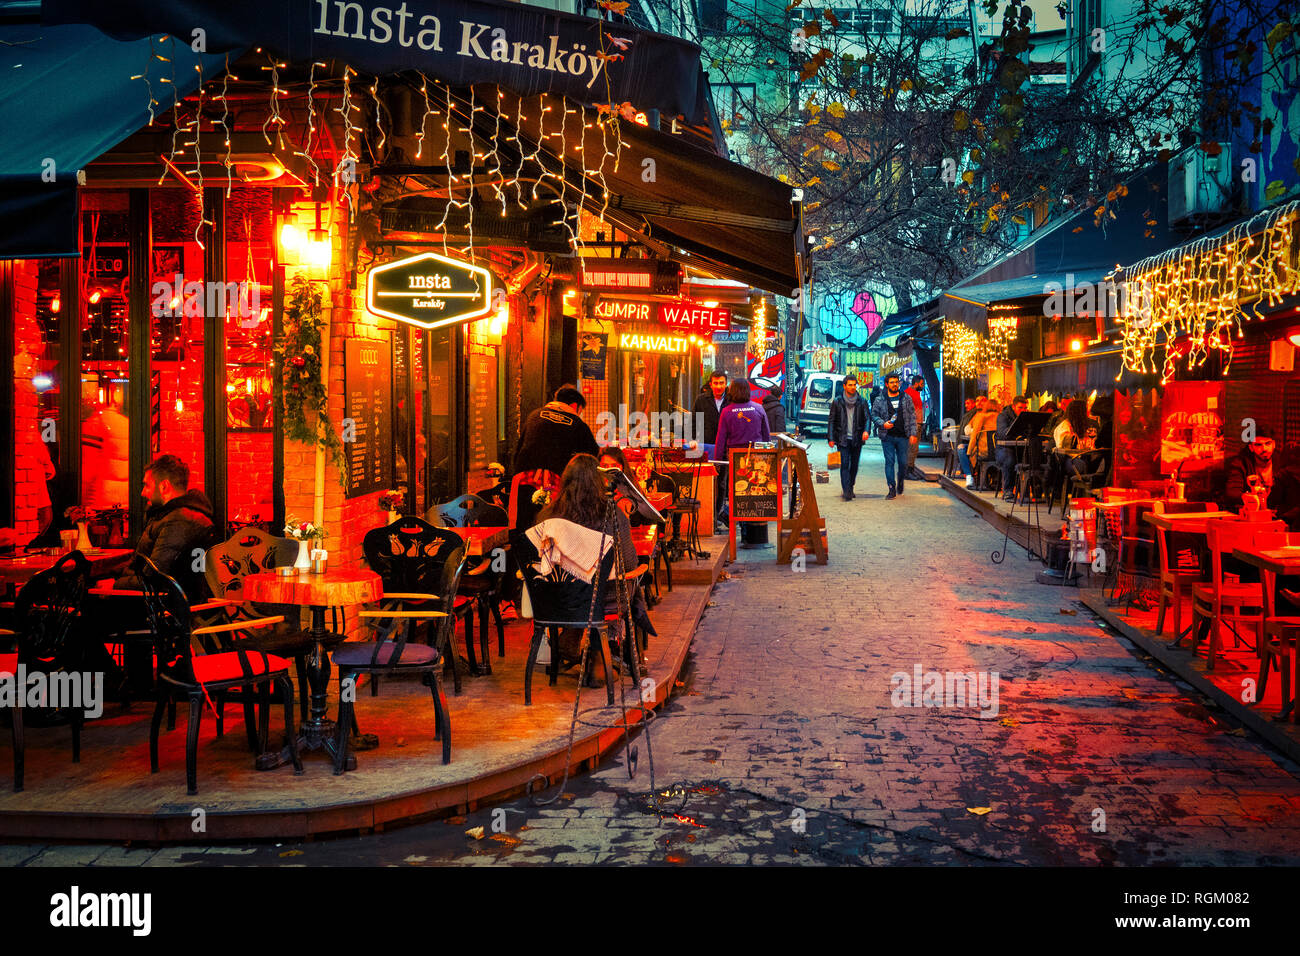 Nightlife in the Tophane district of Istanbul, Turkey - Stock Image